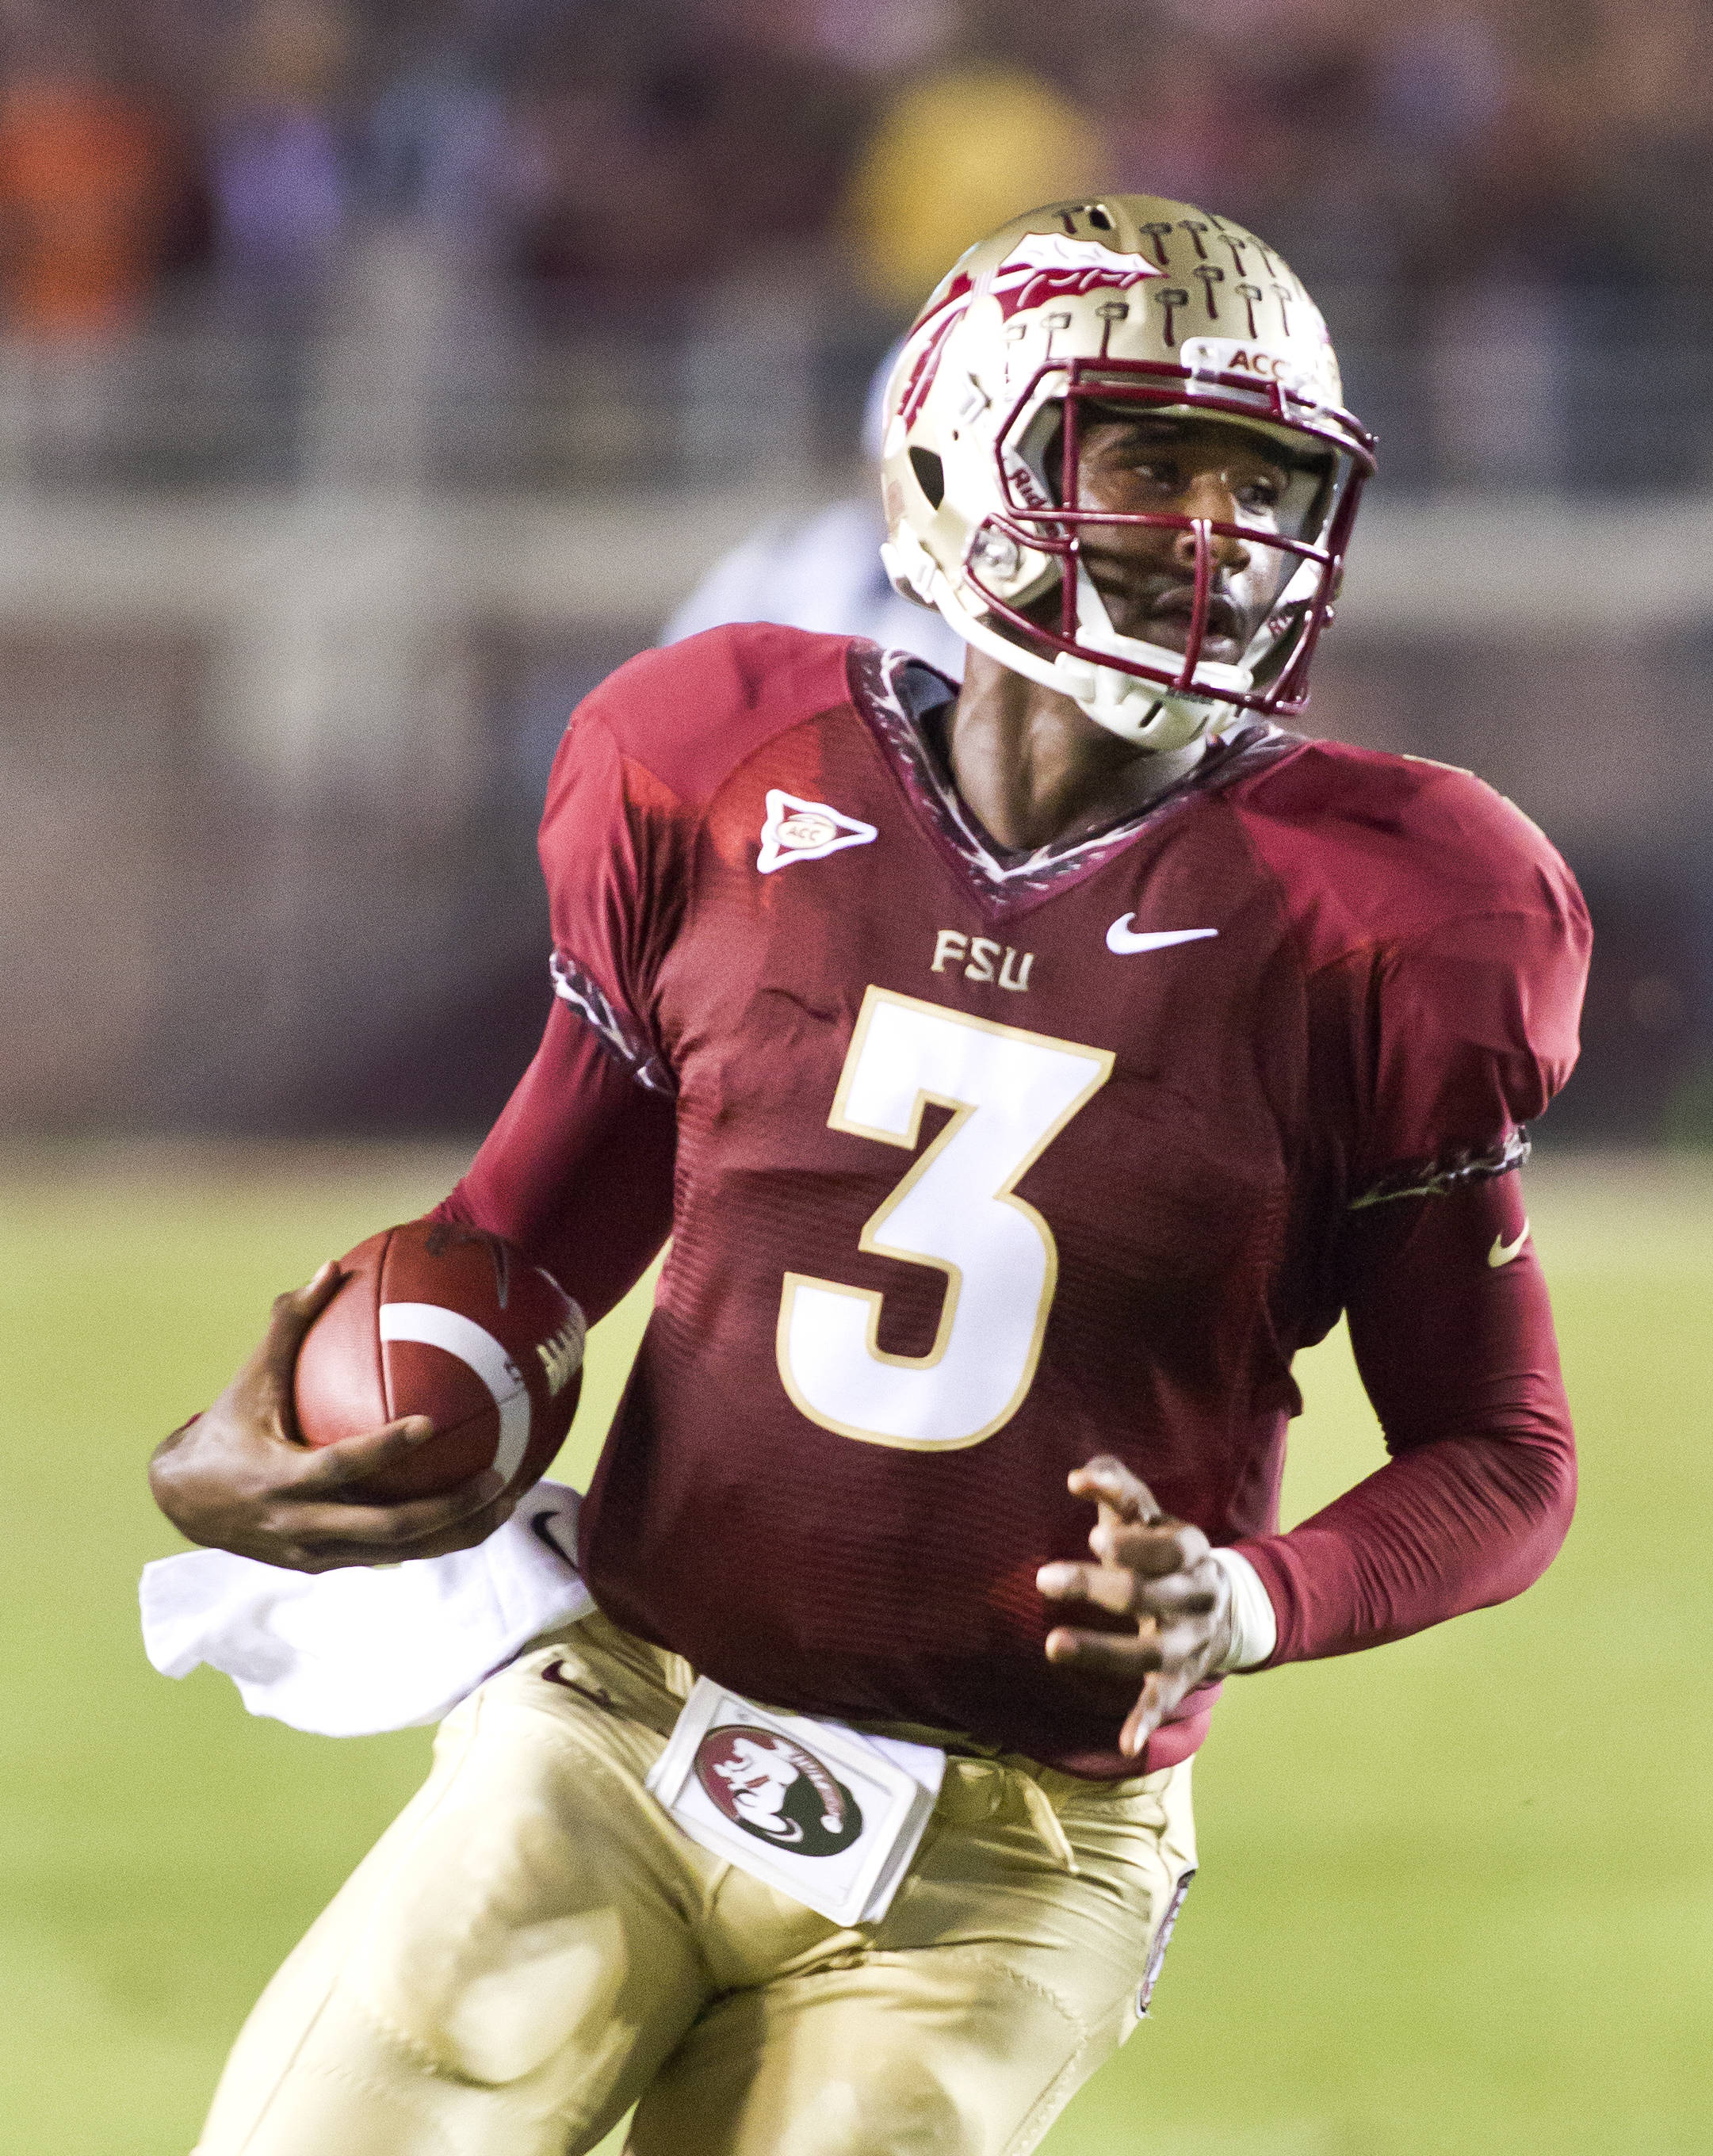 EJ Manuel (3) on a run, FSU vs Clemson, 9/22/12 (Photo by Steve Musco)